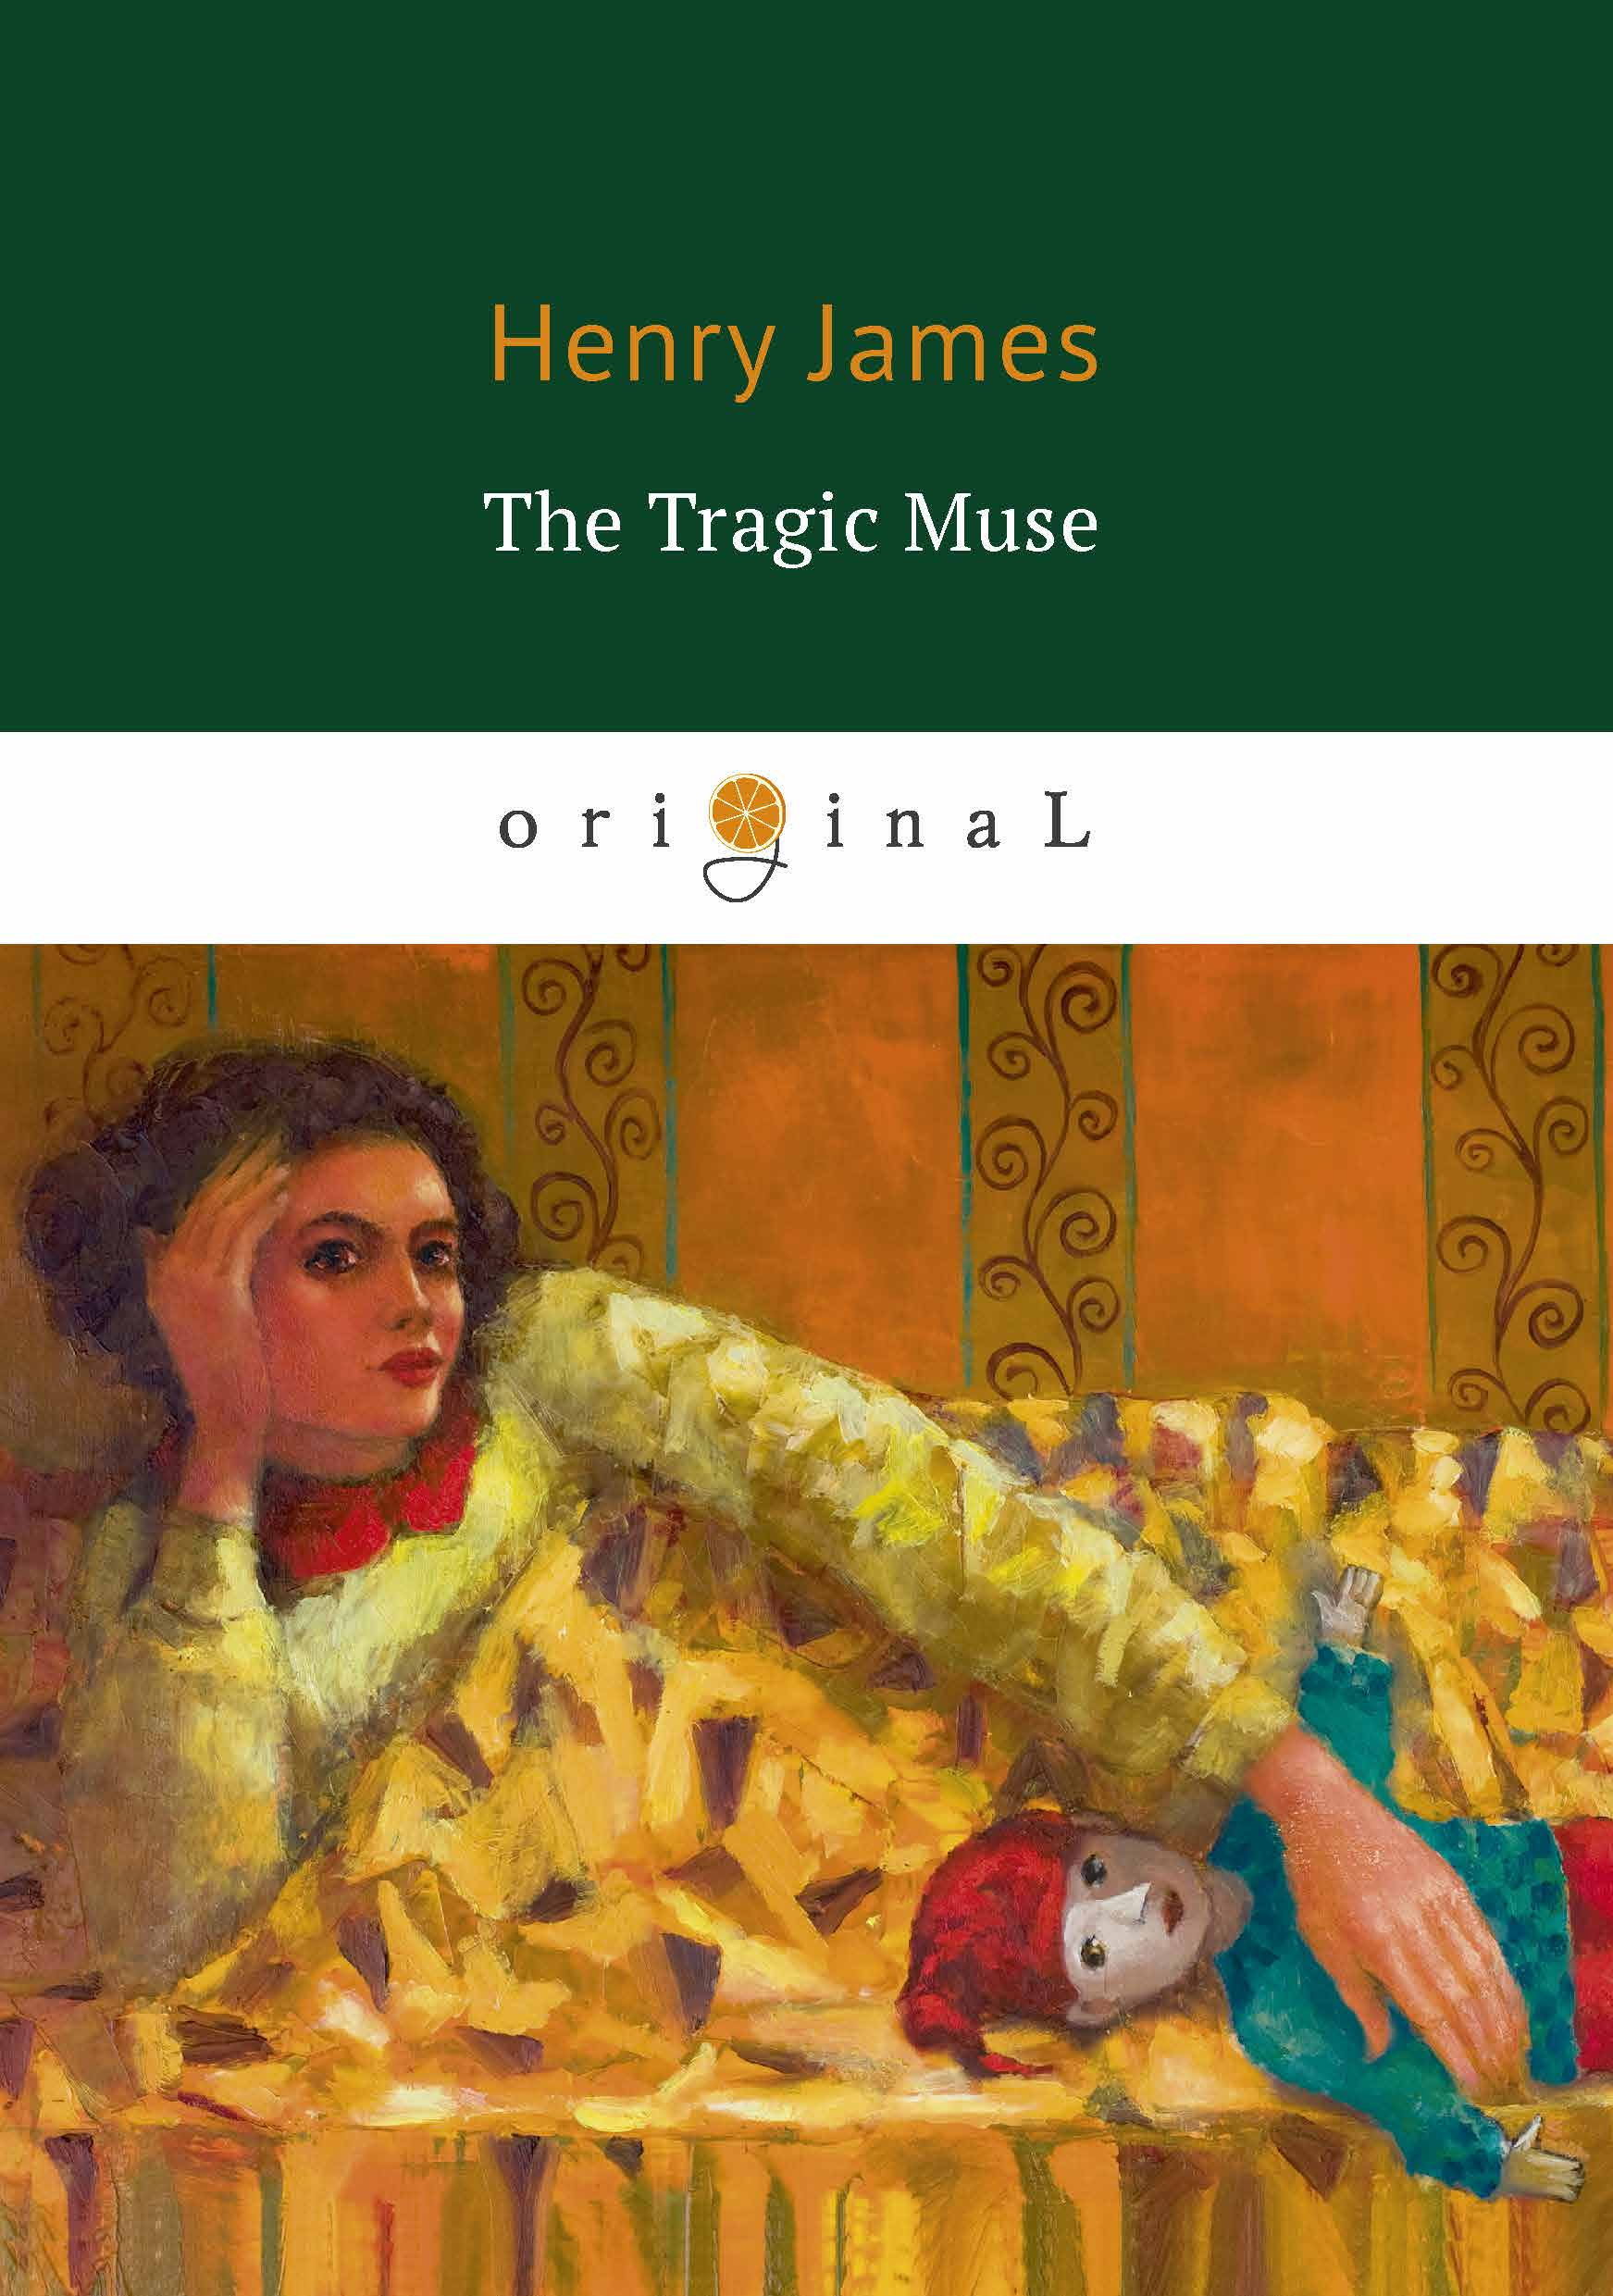 Henry James The Tragic Muse henry james the ivory tower by henry james fiction classics literary